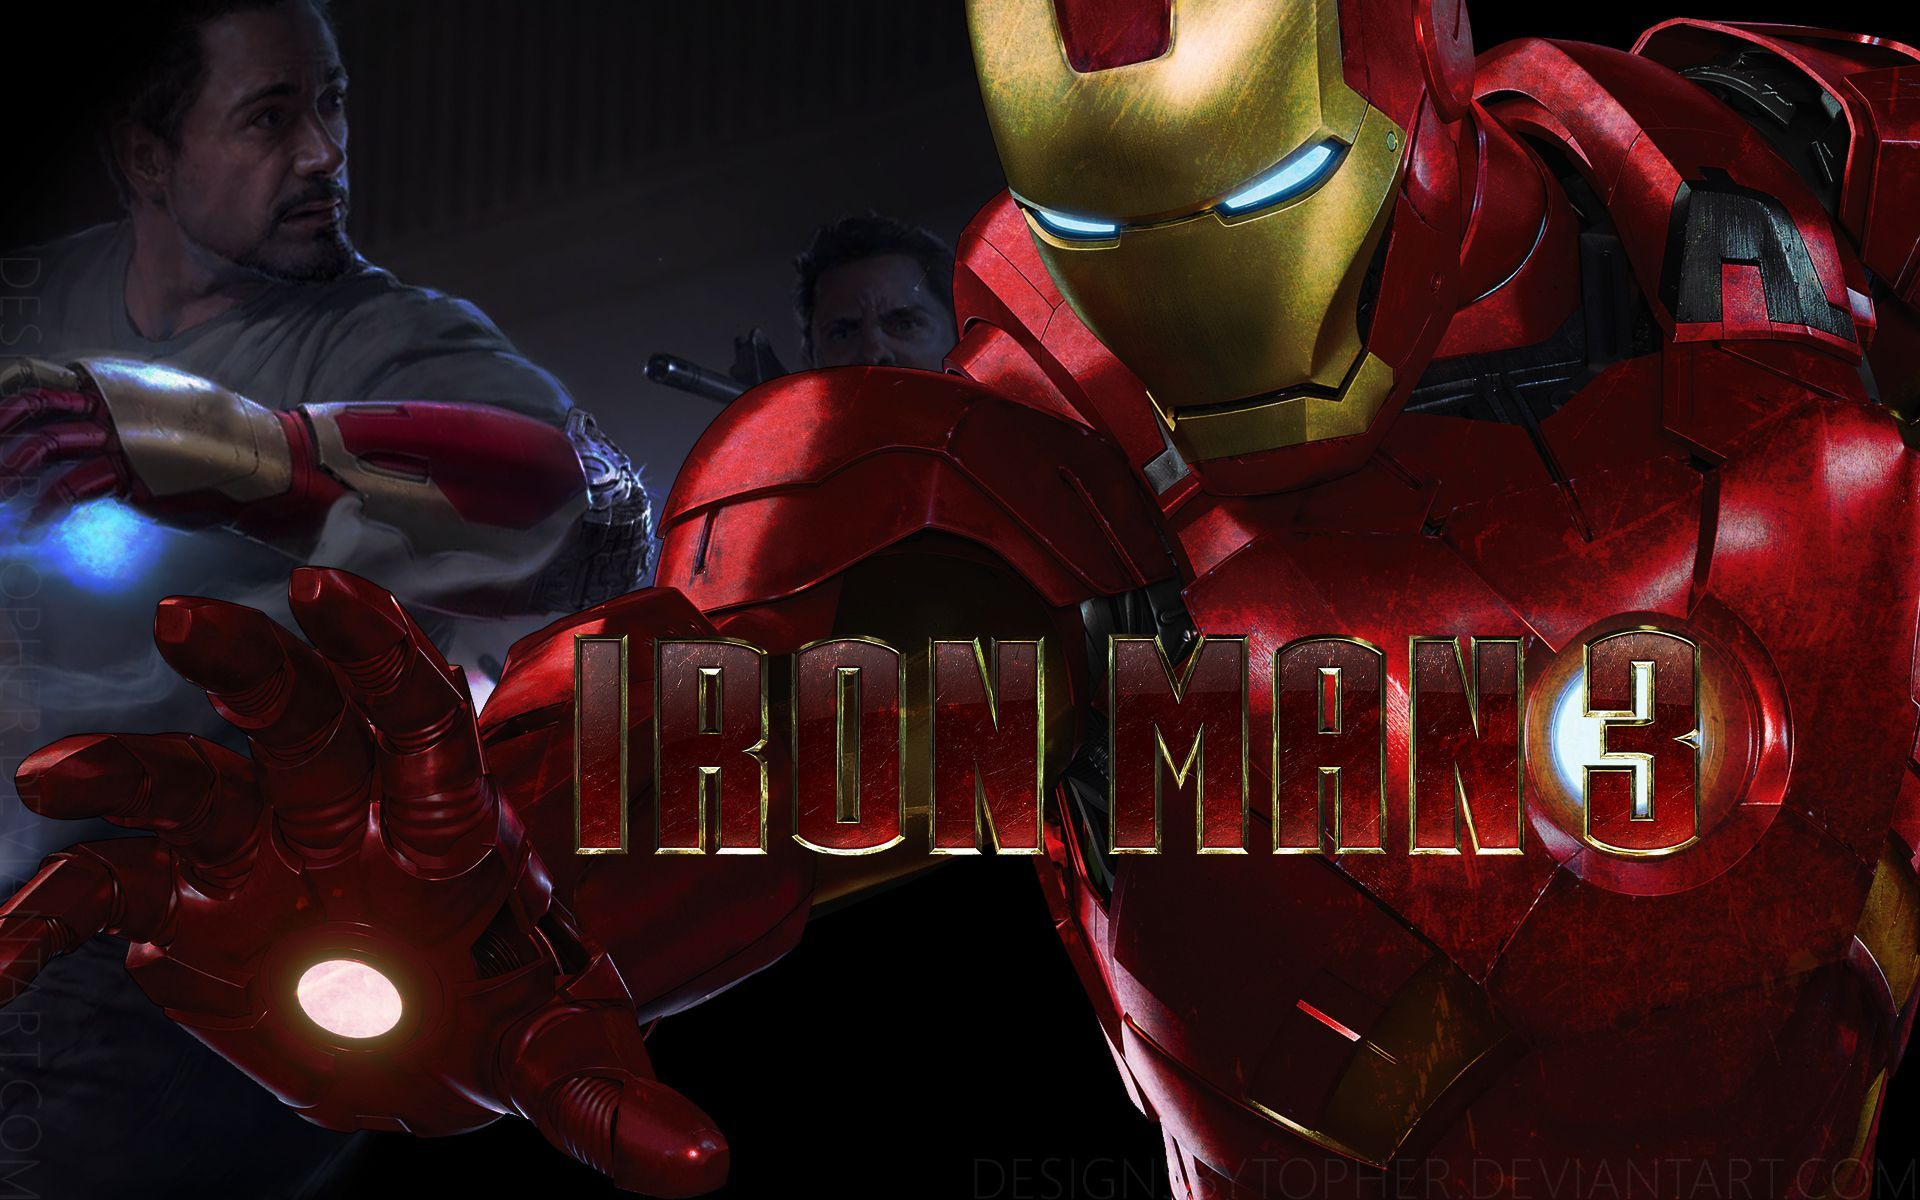 Iron Man Pics Resolution Iron Man 3 Iphone Wallpaper 1080